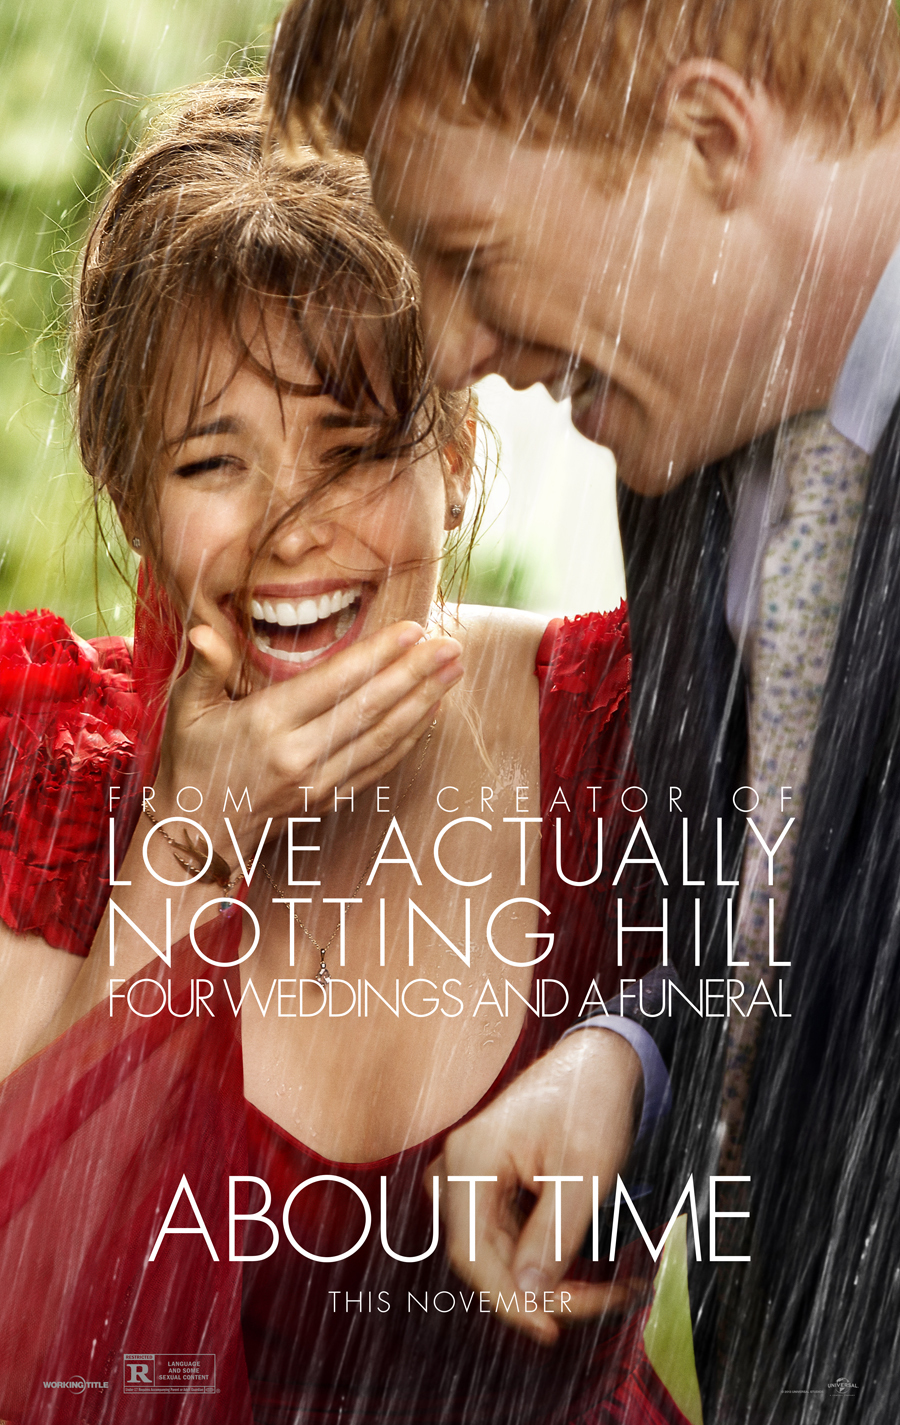 About Time (2013) - Directed by: Richard CurtisStarring: Domhnhall Gleeson, Rachel McAdams, Bill Nighy, Tom Hollander, Margot Robbie, Lindsay Duncan, Lydia WilsonRated: R for Language and Some Sexual ContentRunning Time: 2 h 3 mTMM Score: 3.5 stars out of 5STRENGTHS: Intent, Some Writing, ActingWEAKNESSES: Unacknowledged Implications and Consequences